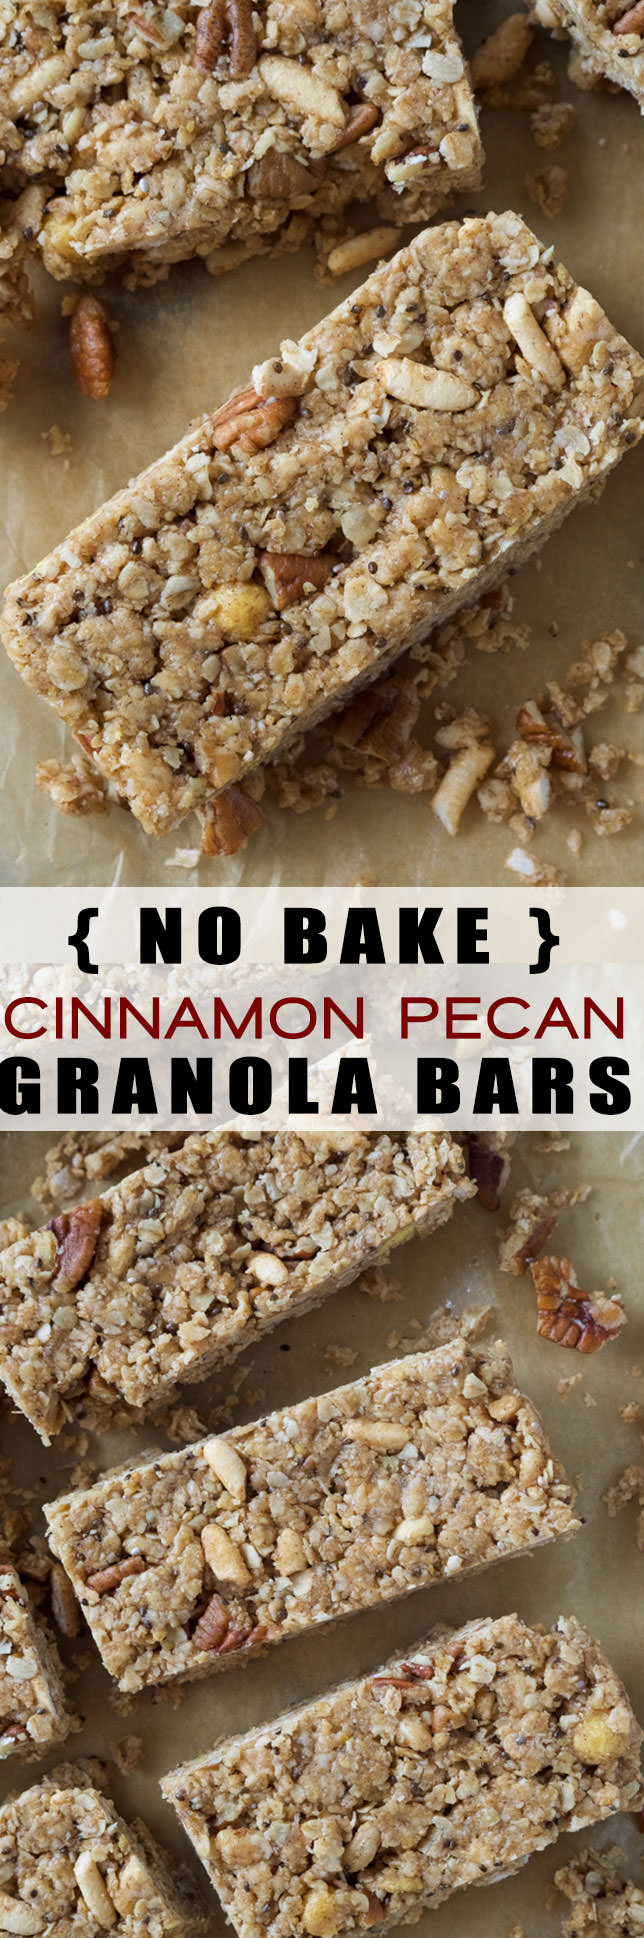 No Bake Cinnamon Pecan Granola Bars